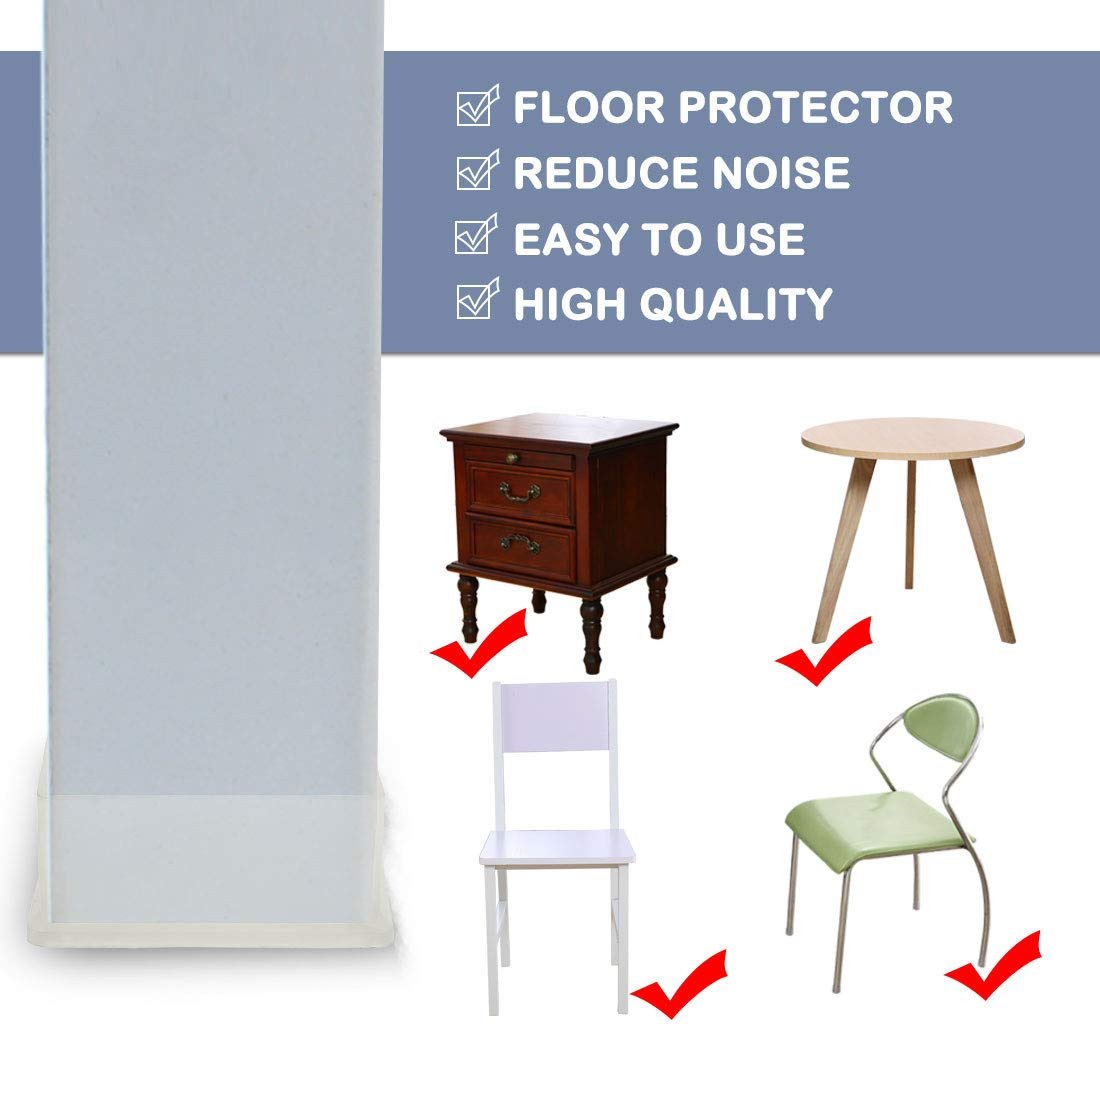 40x60mm Inner Size Reduce Noise Avoid Scratch a18073000ux0240 uxcell Clear PVC Chair Leg Caps End Tip Feet Cover Furniture Glide Floor Protector 18pcs 1.57 x 2.36